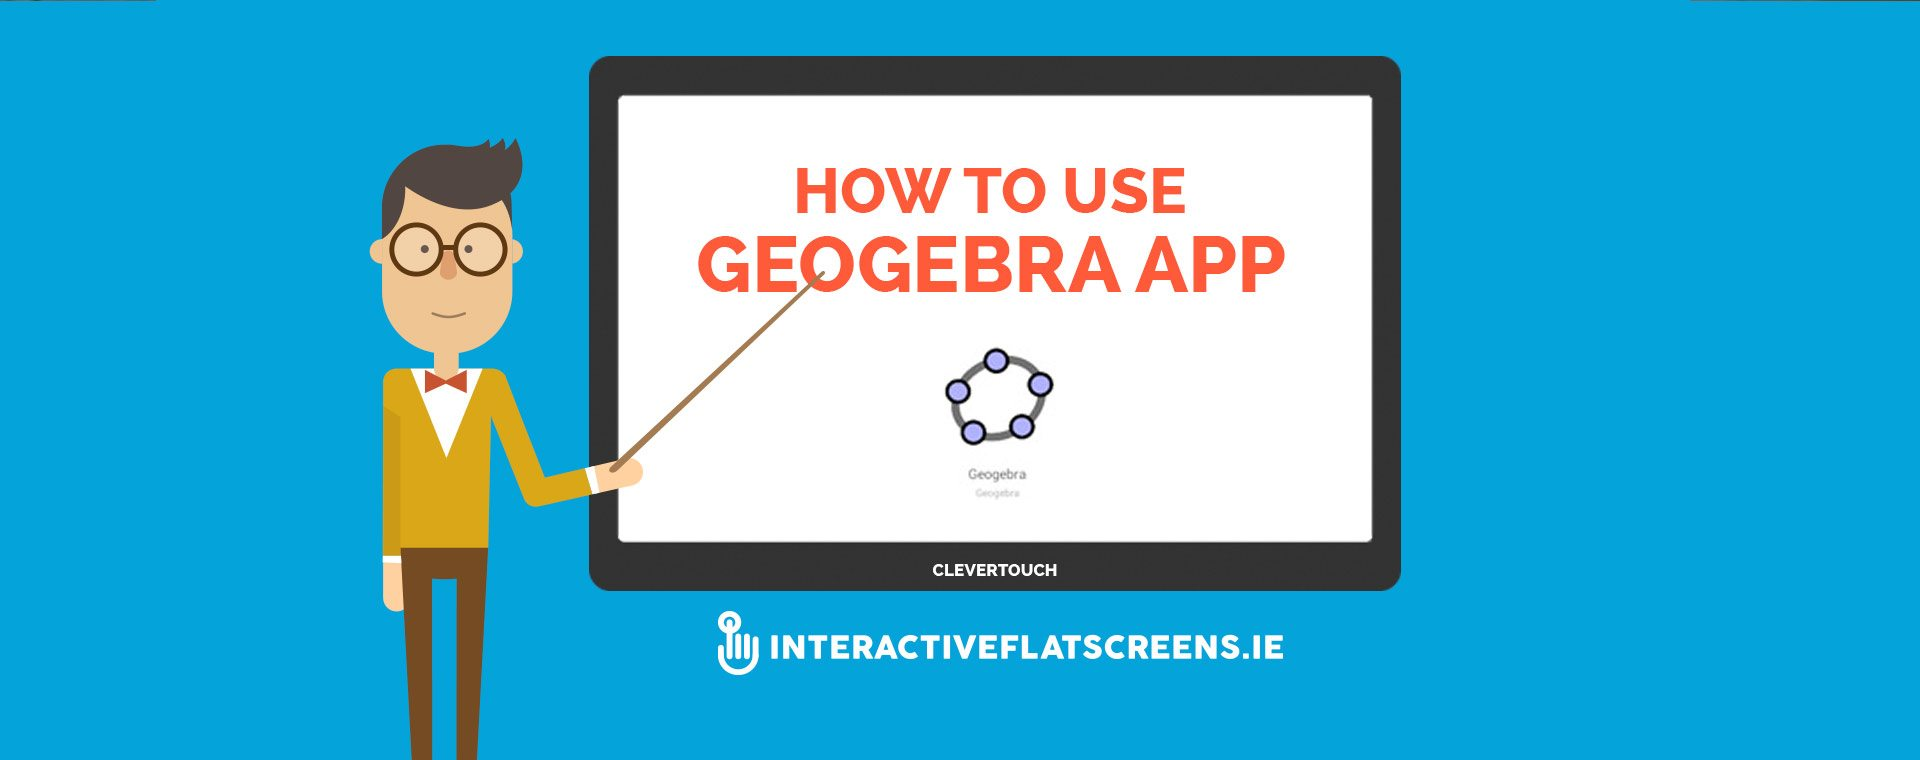 How to Use Geogebra App - Clevertouch Training Video - Interactive Flatscreen Dublin